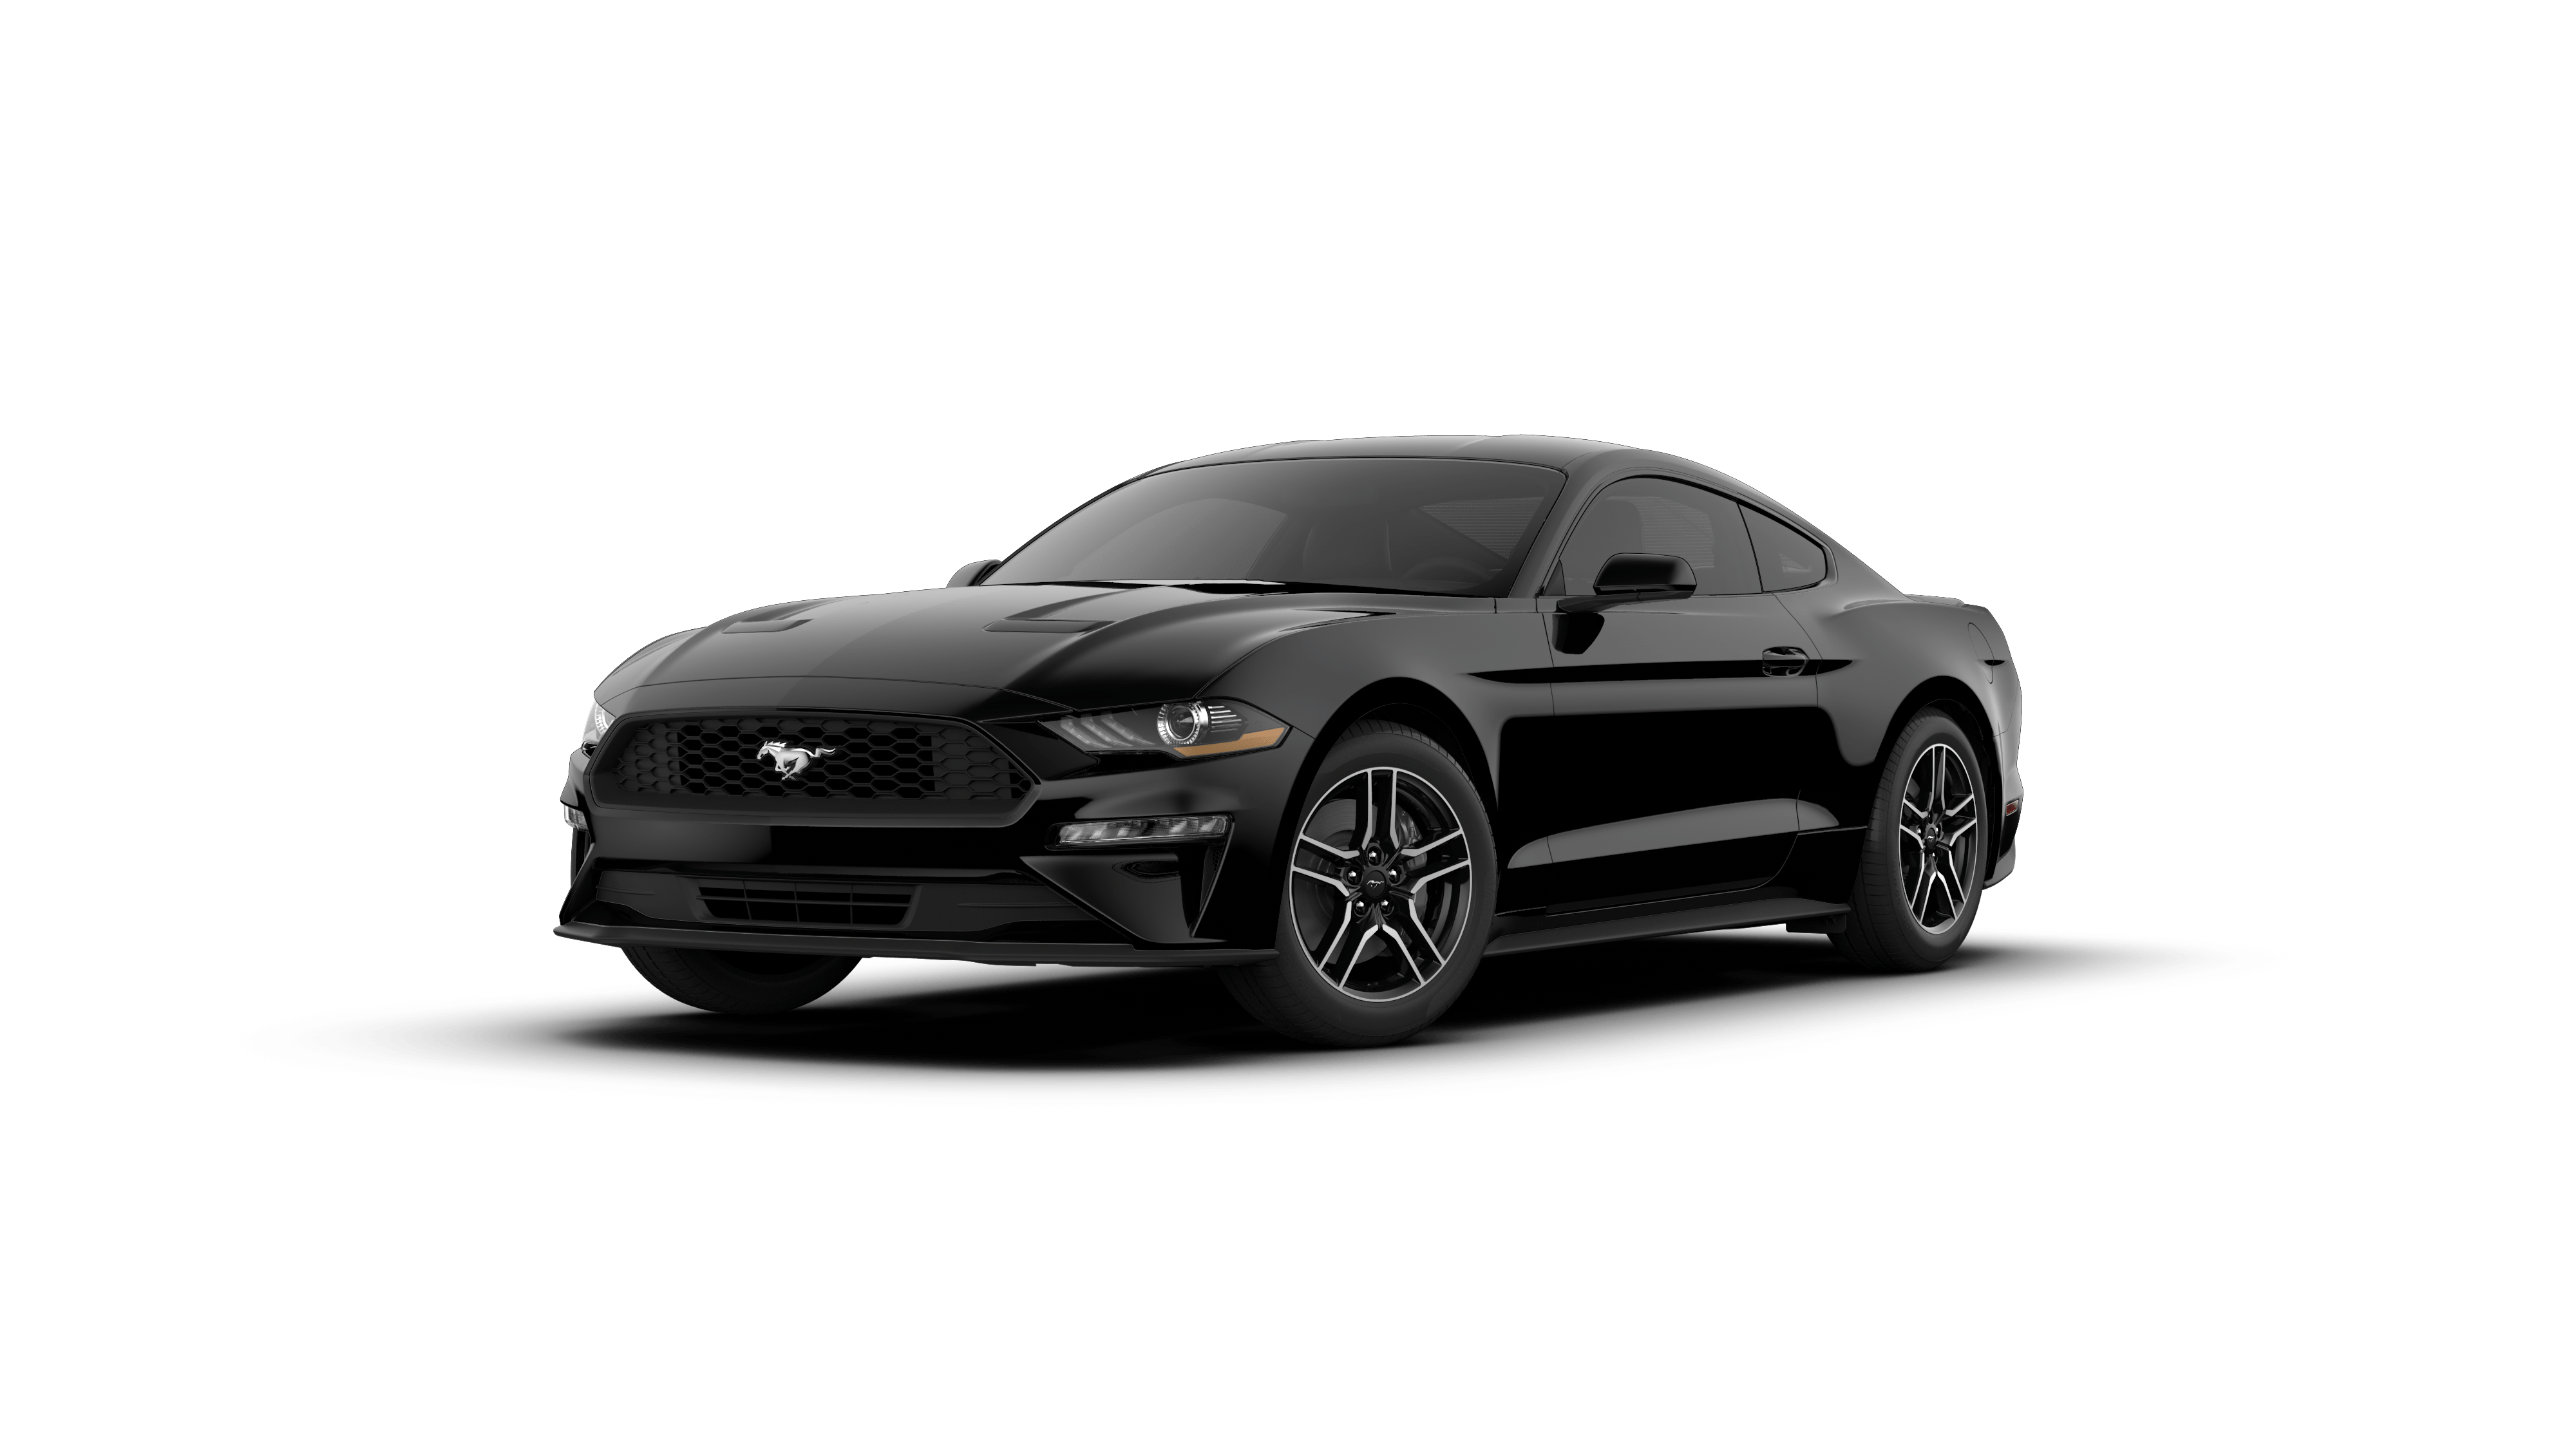 Quakertown New Ford Mustang Vehicles For Sale At Ciocca 1973 Fuel Filter 2019 Vehicle Photo In Pa 18951 1403